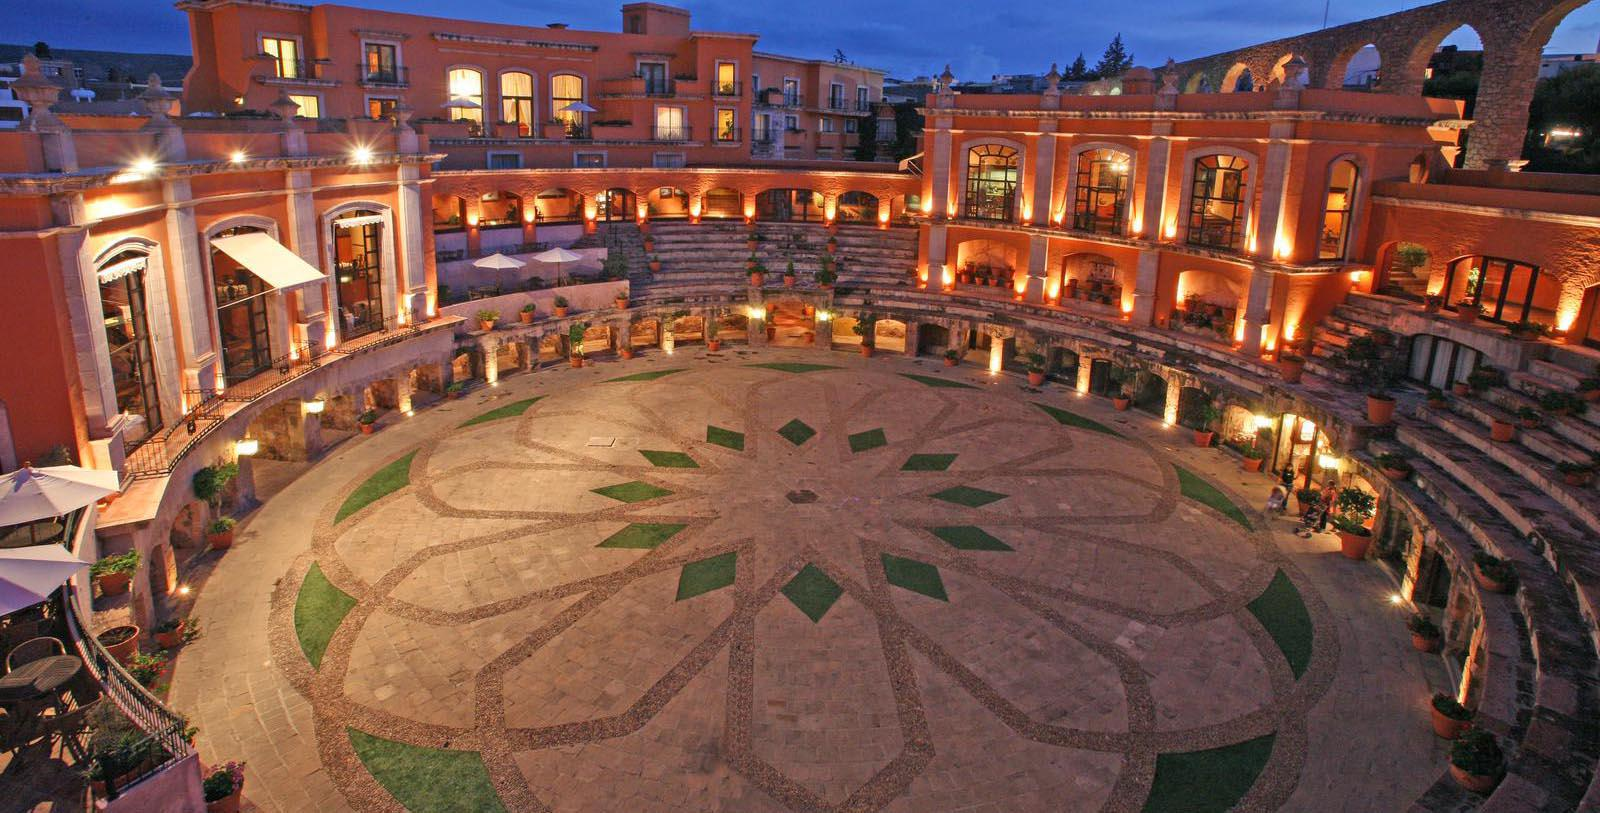 Image of Courtyard Quinta Real Zacatecas, 1866, Member of Historic Hotels Worldwide, in Zacatecas, Mexico, Overview